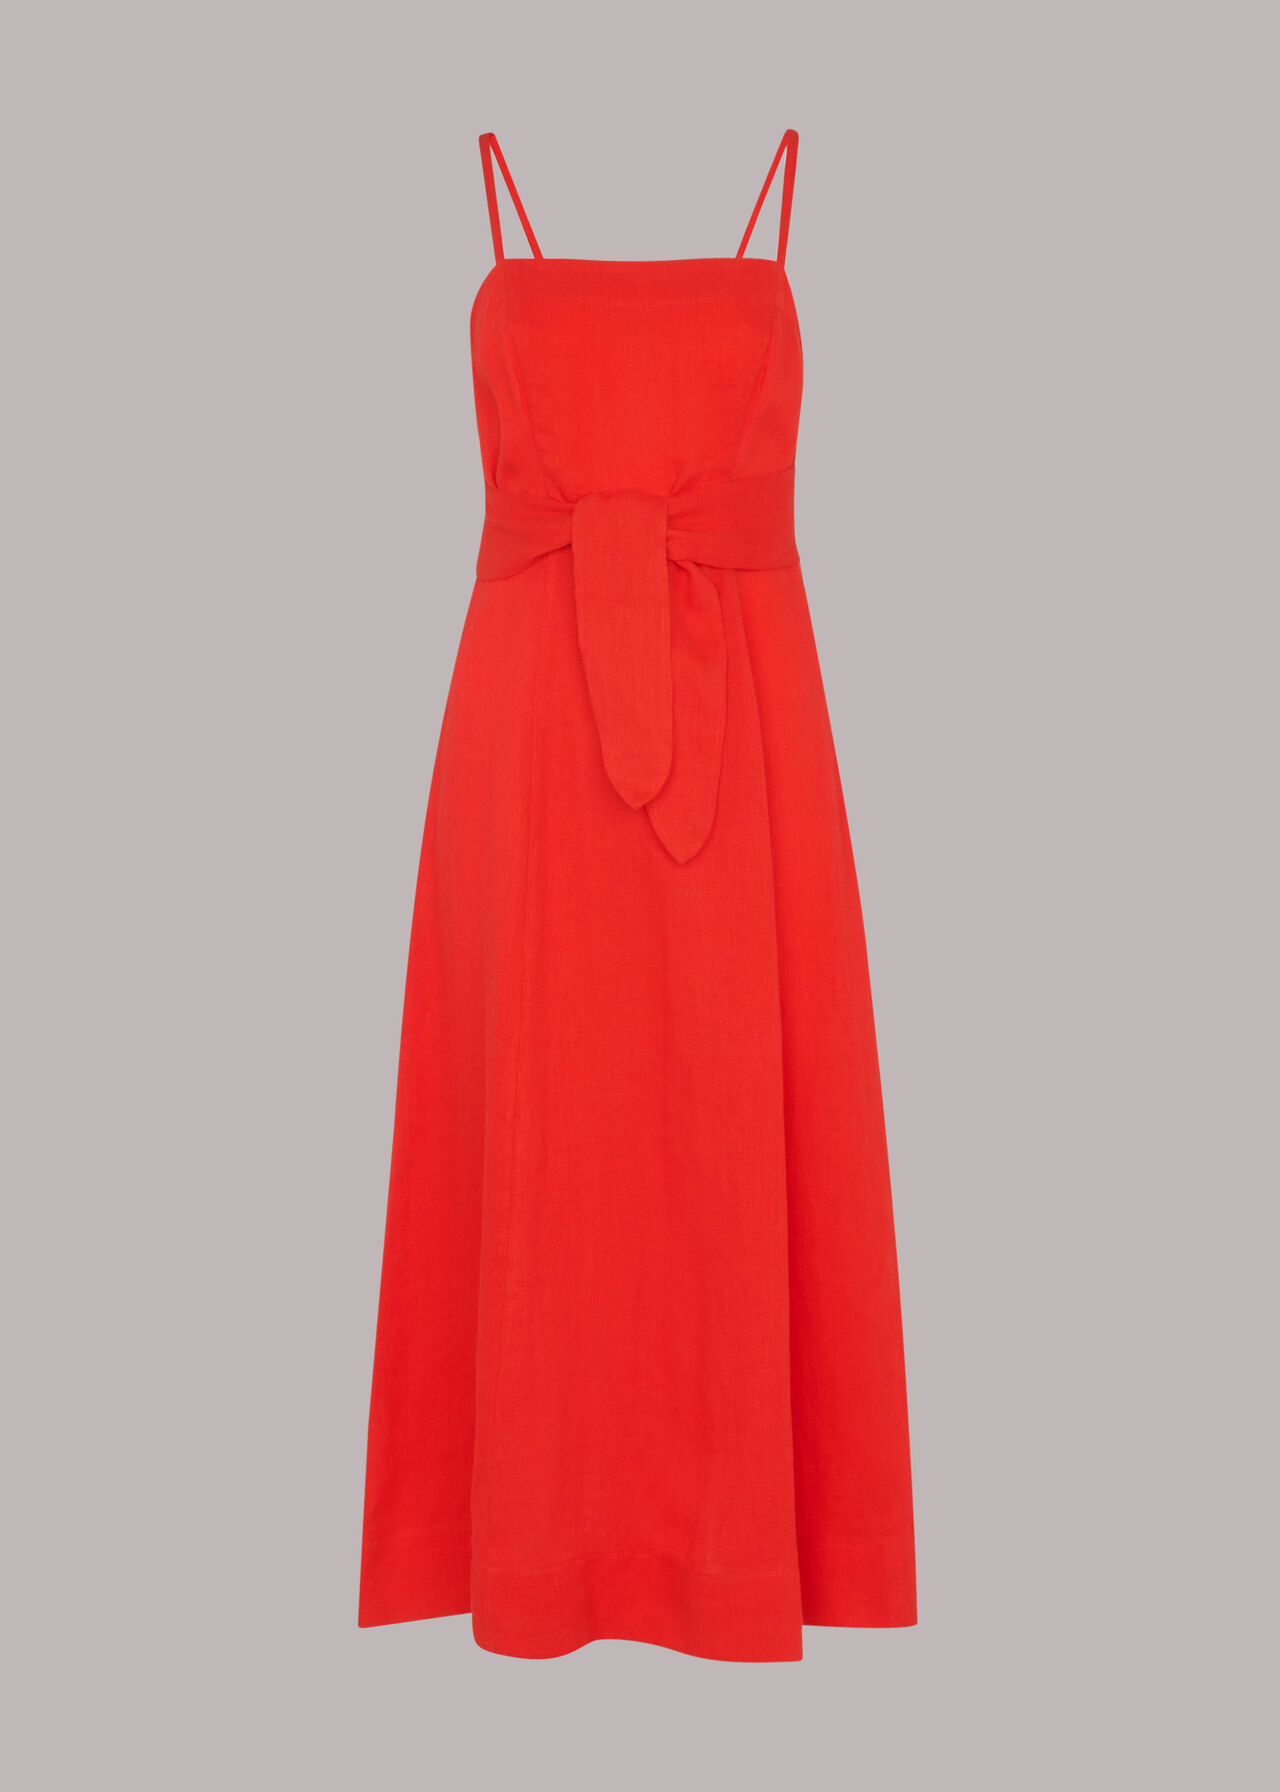 Linen Tie Front Strappy Dress Red